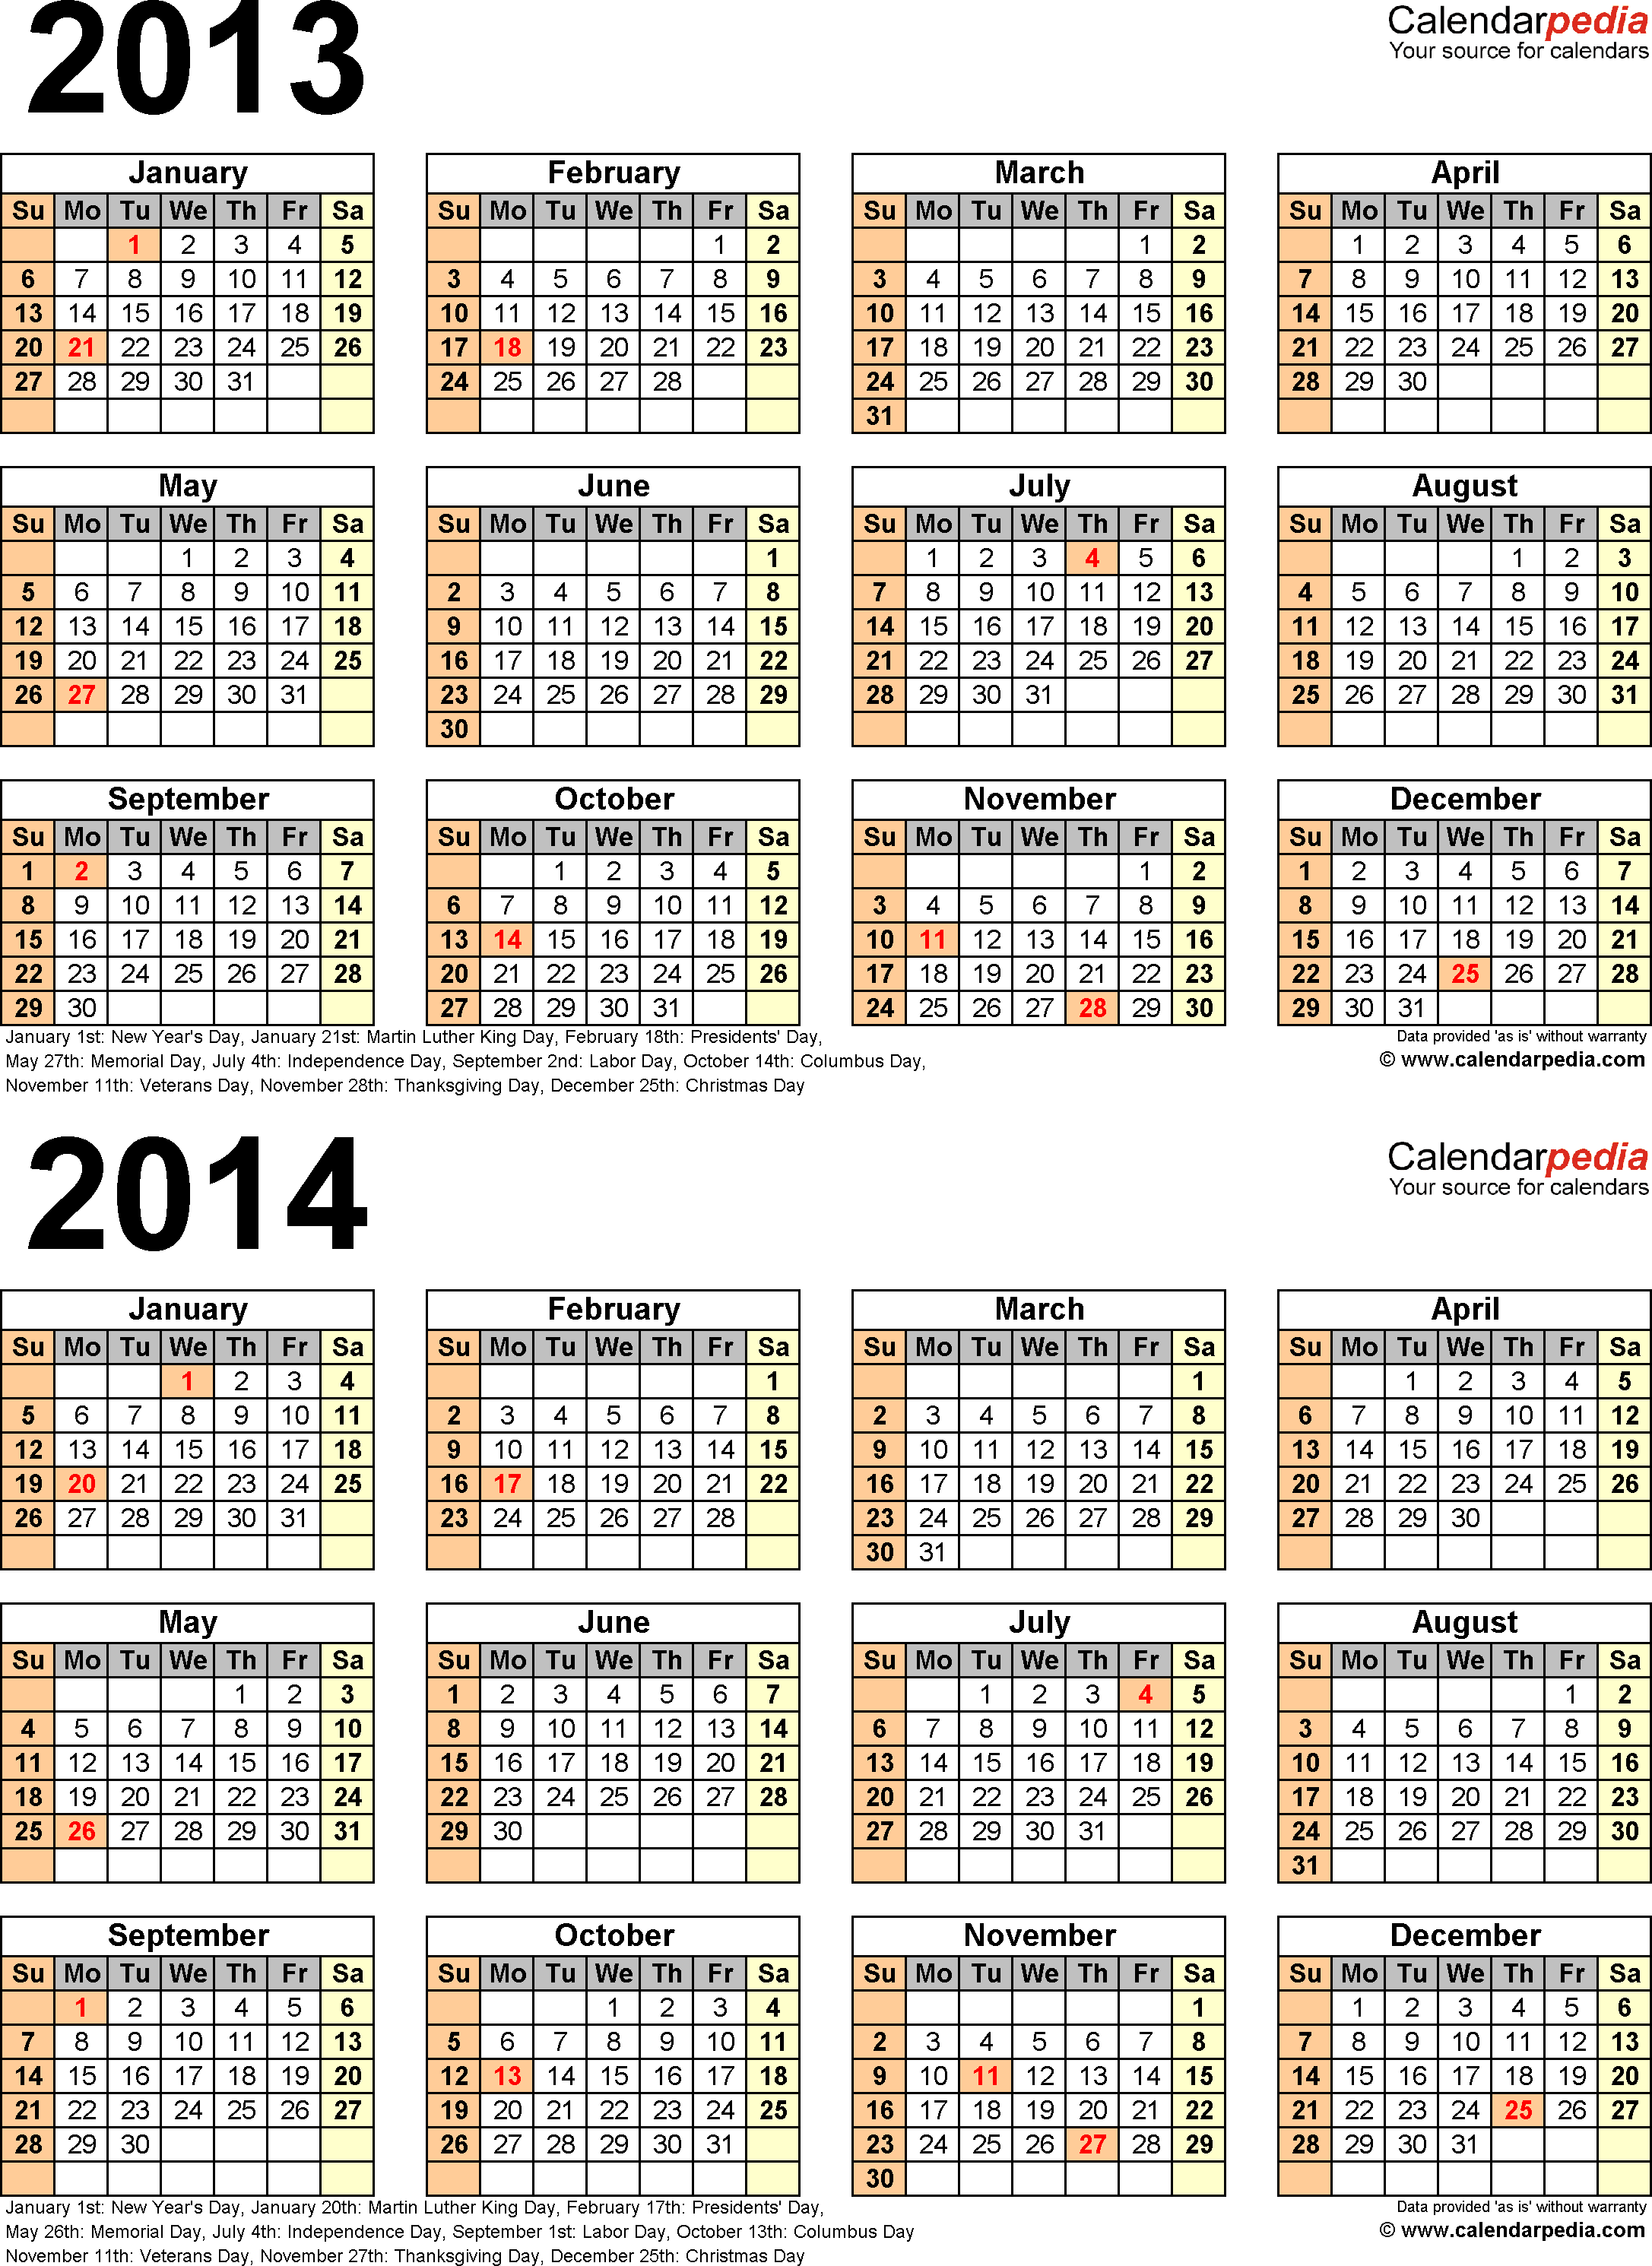 Download Template 4: PDF template for two year calendar 2013/2014 (portrait orientation, 1 page, years stacked)